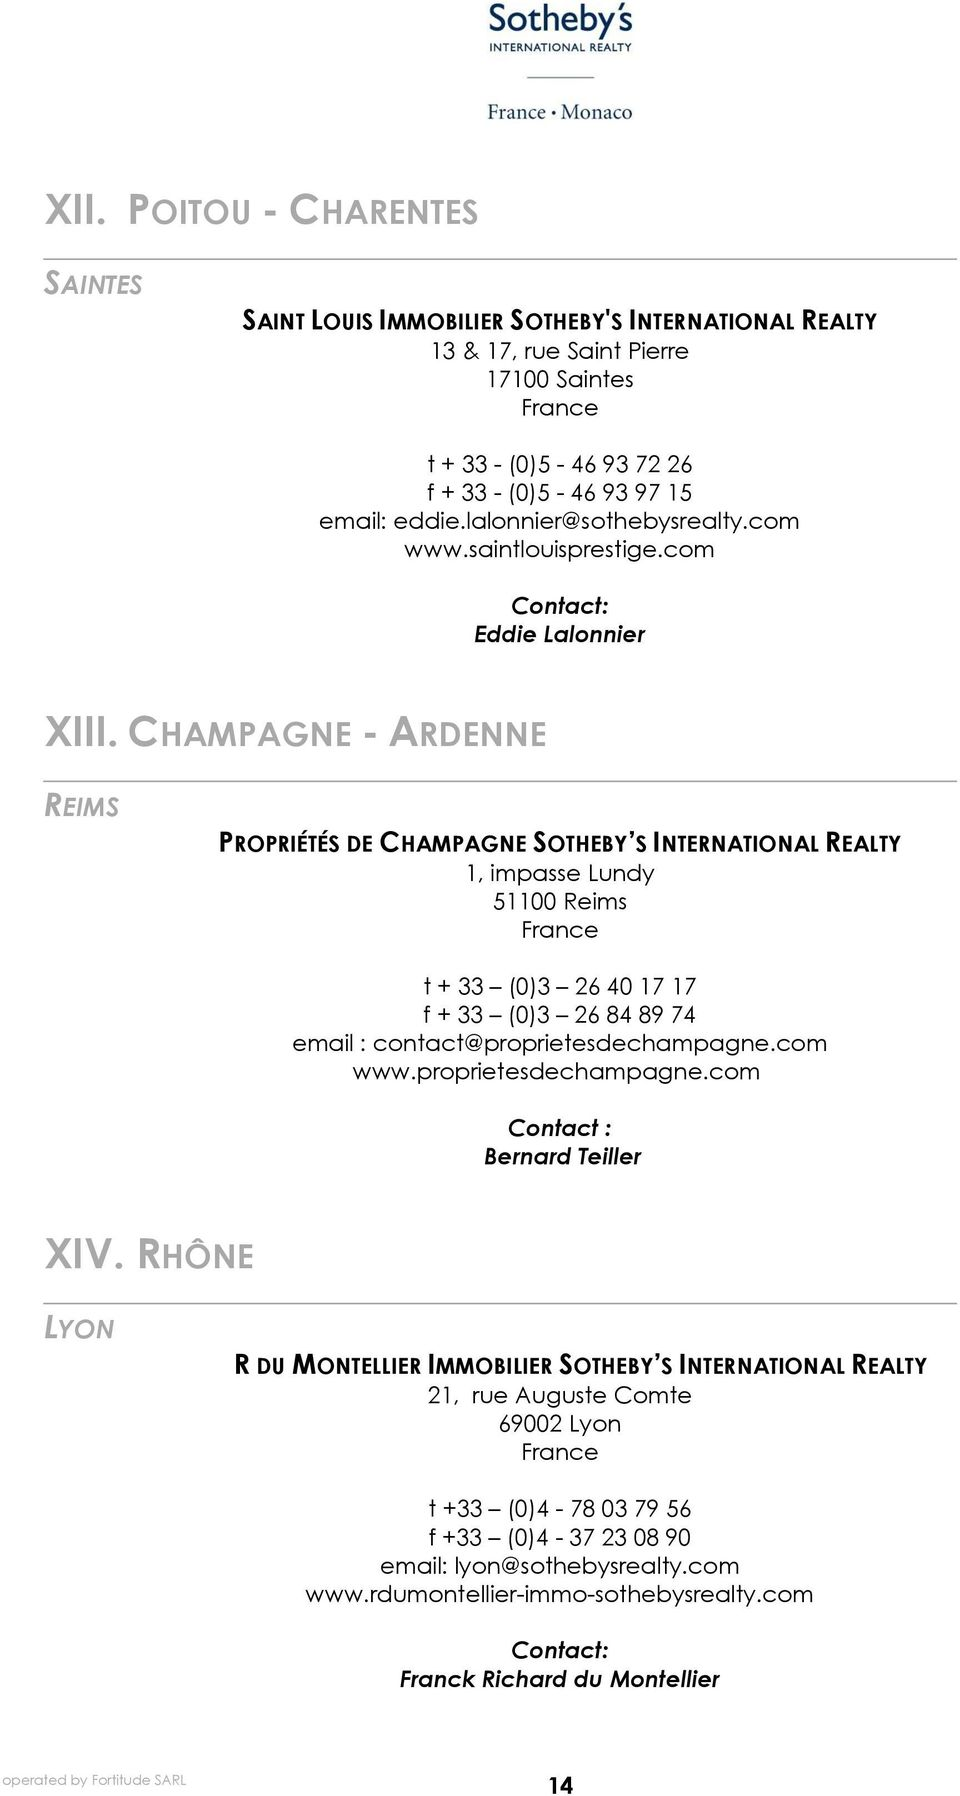 CHAMPAGNE - ARDENNE REIMS PROPRIÉTÉS DE CHAMPAGNE SOTHEBY S INTERNATIONAL REALTY 1, impasse Lundy 51100 Reims t + 33 (0)3 26 40 17 17 f + 33 (0)3 26 84 89 74 email : contact@proprietesdechampagne.